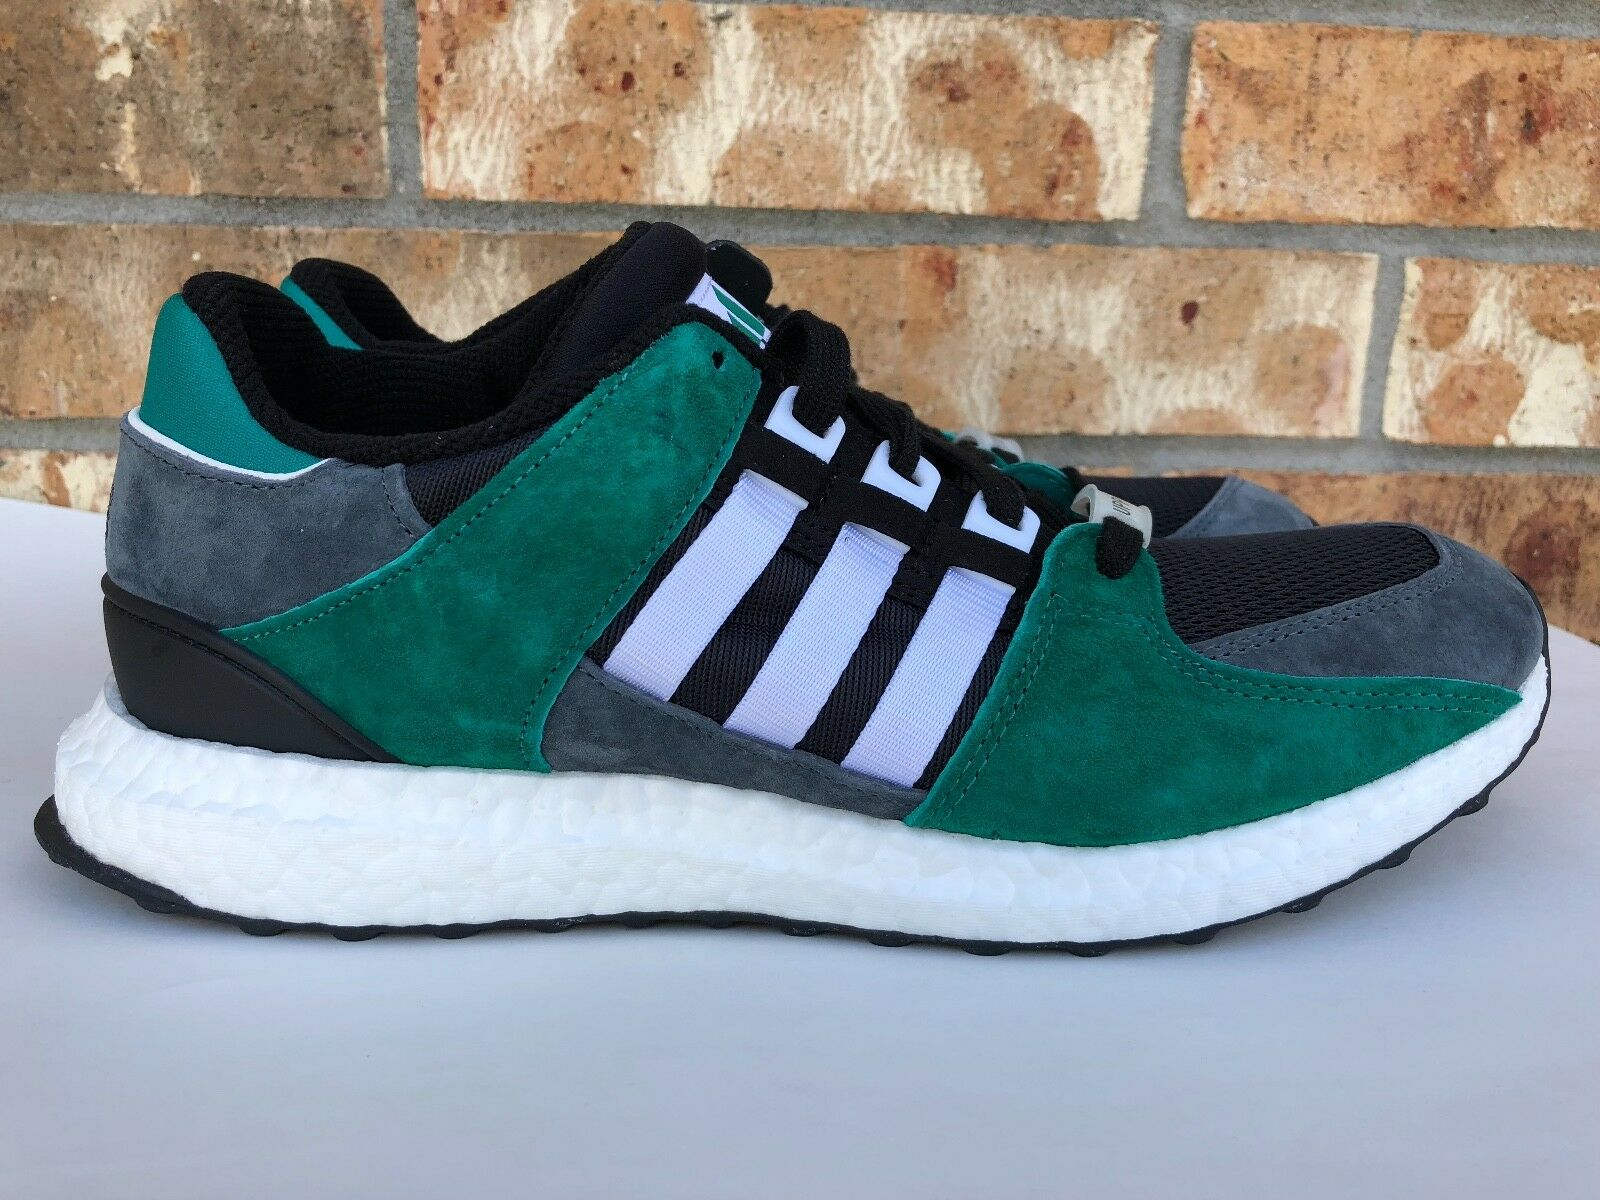 Men's Adidas EQT Support 93/16 Boost Size Green Black White Grey Size Boost 9.5 S79923 bb6dc1